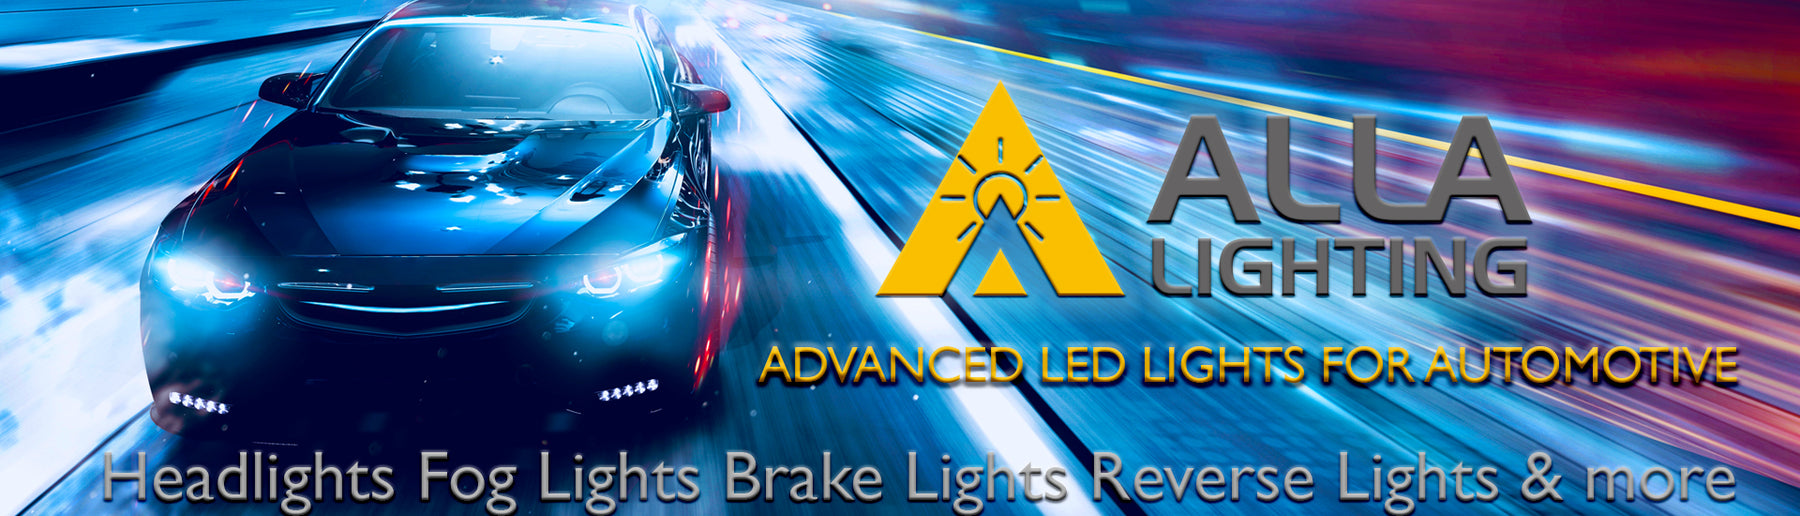 LED Turn Signal Light Upgrade for Cars Trucks SUVs Vans Motorcycles at ALLALighting.com